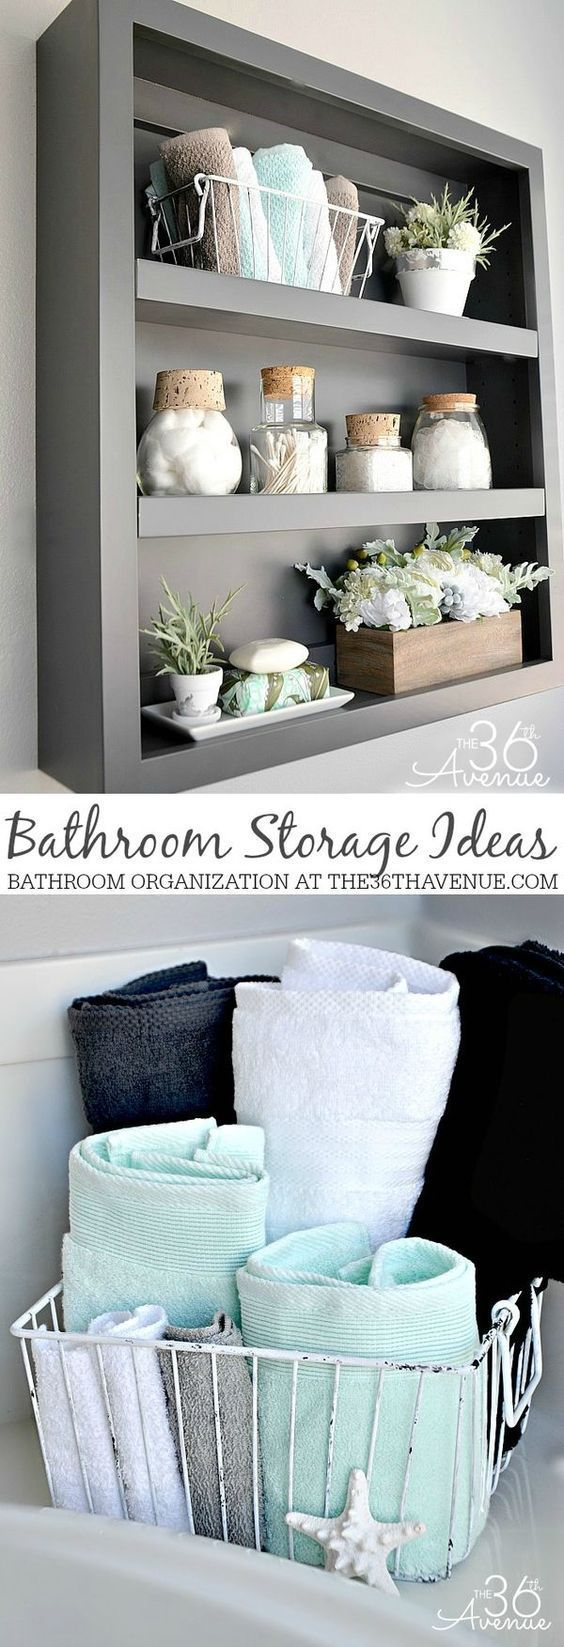 Small Bathroom Designs On Pinterest best 25+ ideas for small bathrooms ideas on pinterest | inspired